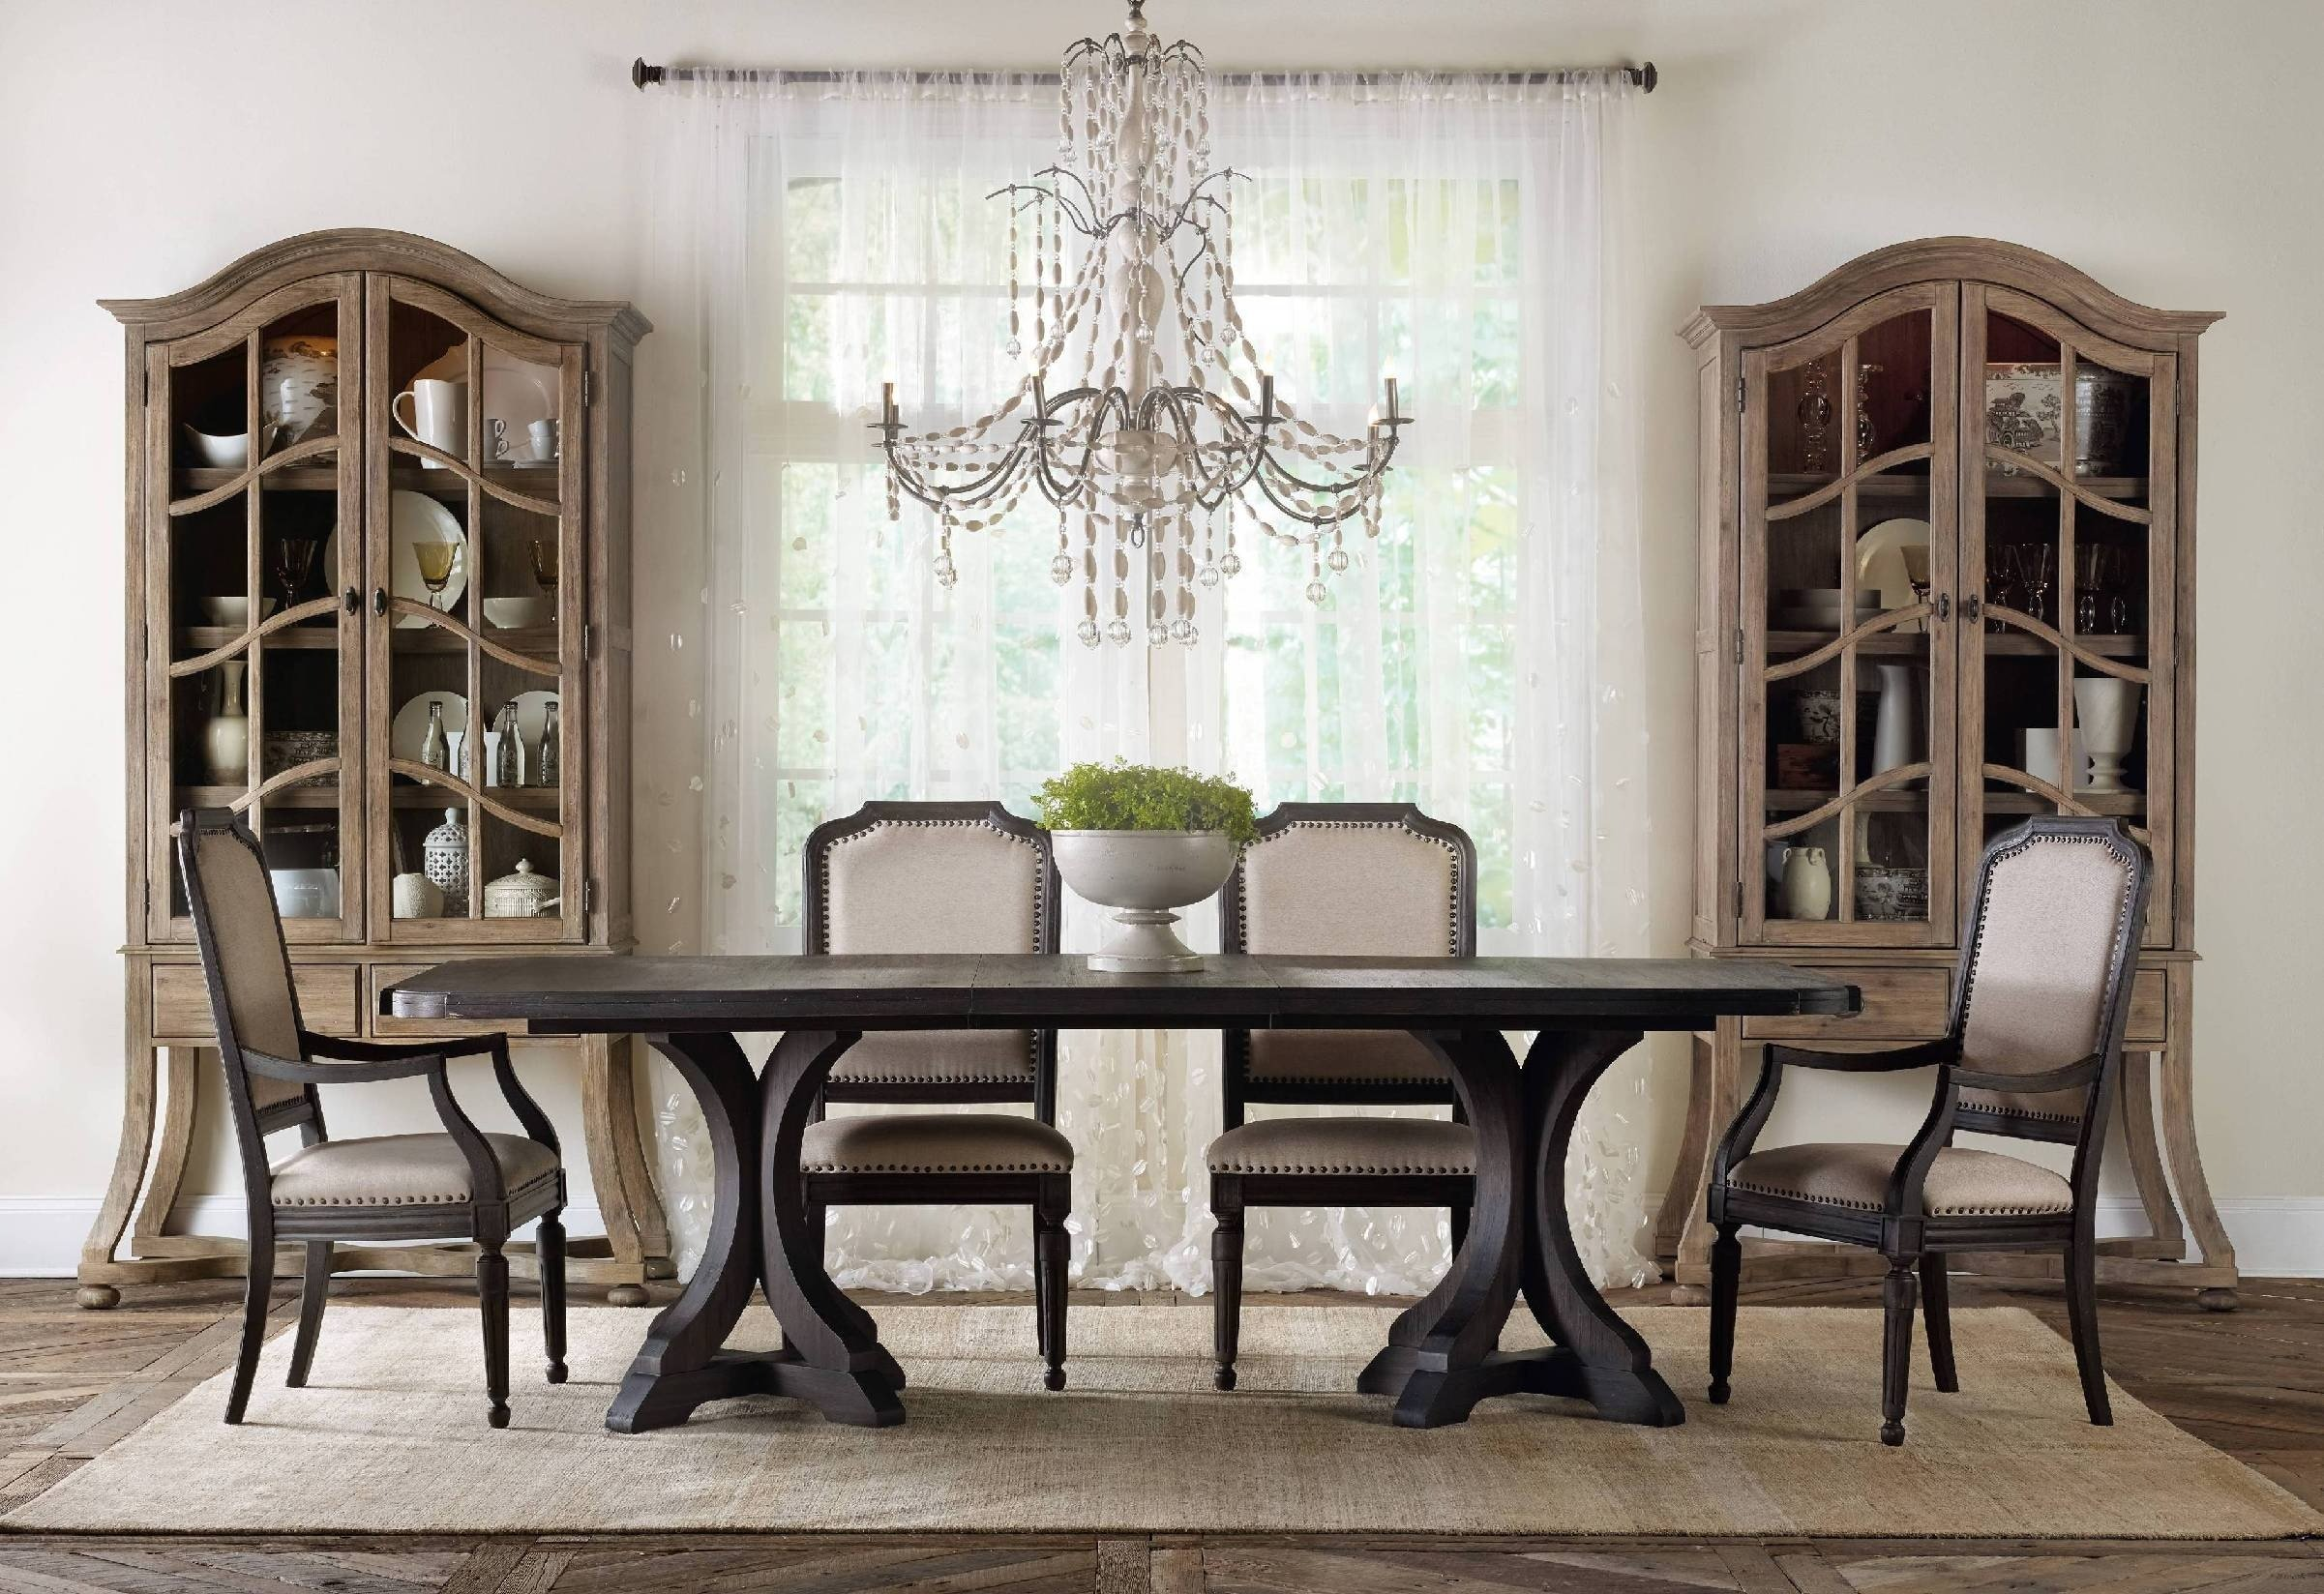 Hooker Corsica Rectangular Pedestal Dining Table with Leaves Rustic Furniture Tables Simple Elegant Traditional Casual